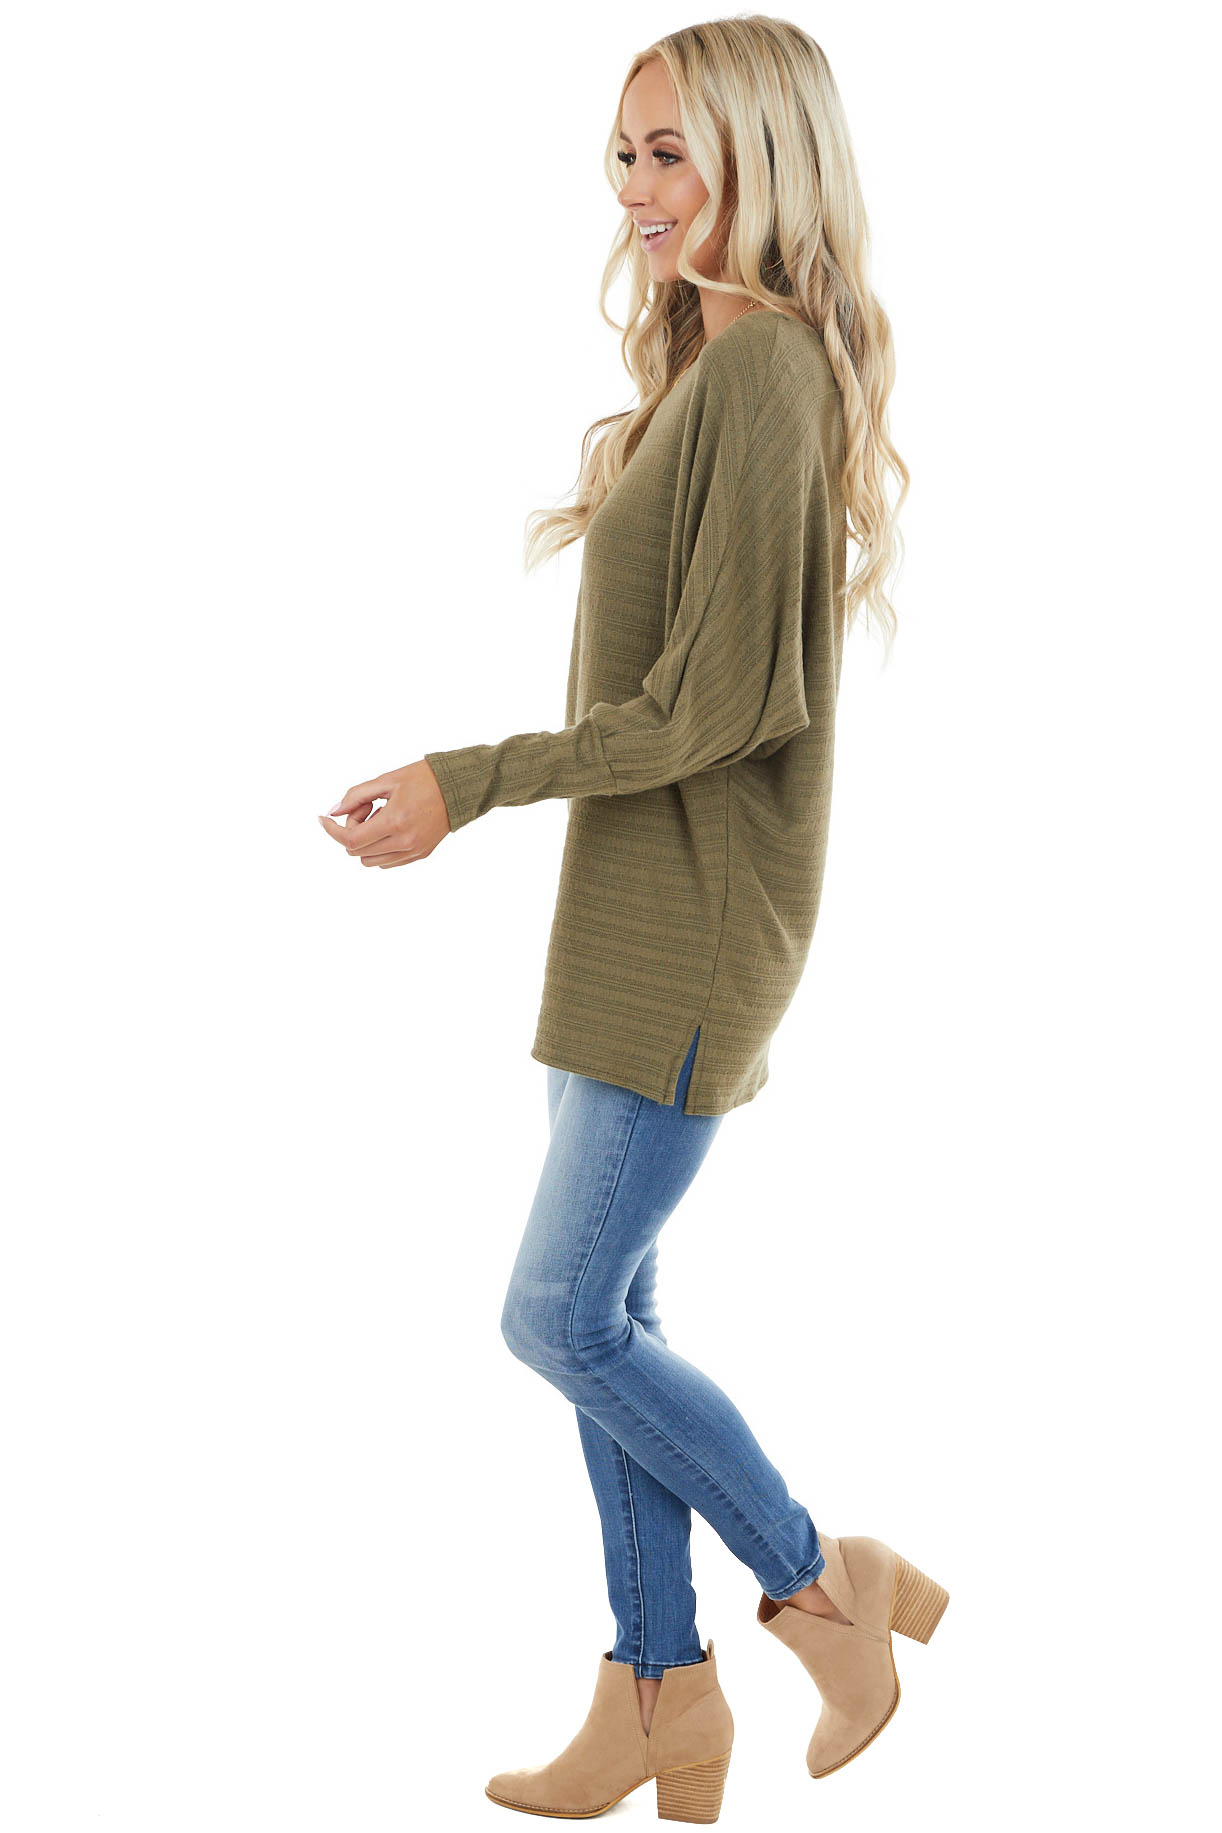 Dusty Olive Textured Stretchy Knit Top with Dolman Sleeves